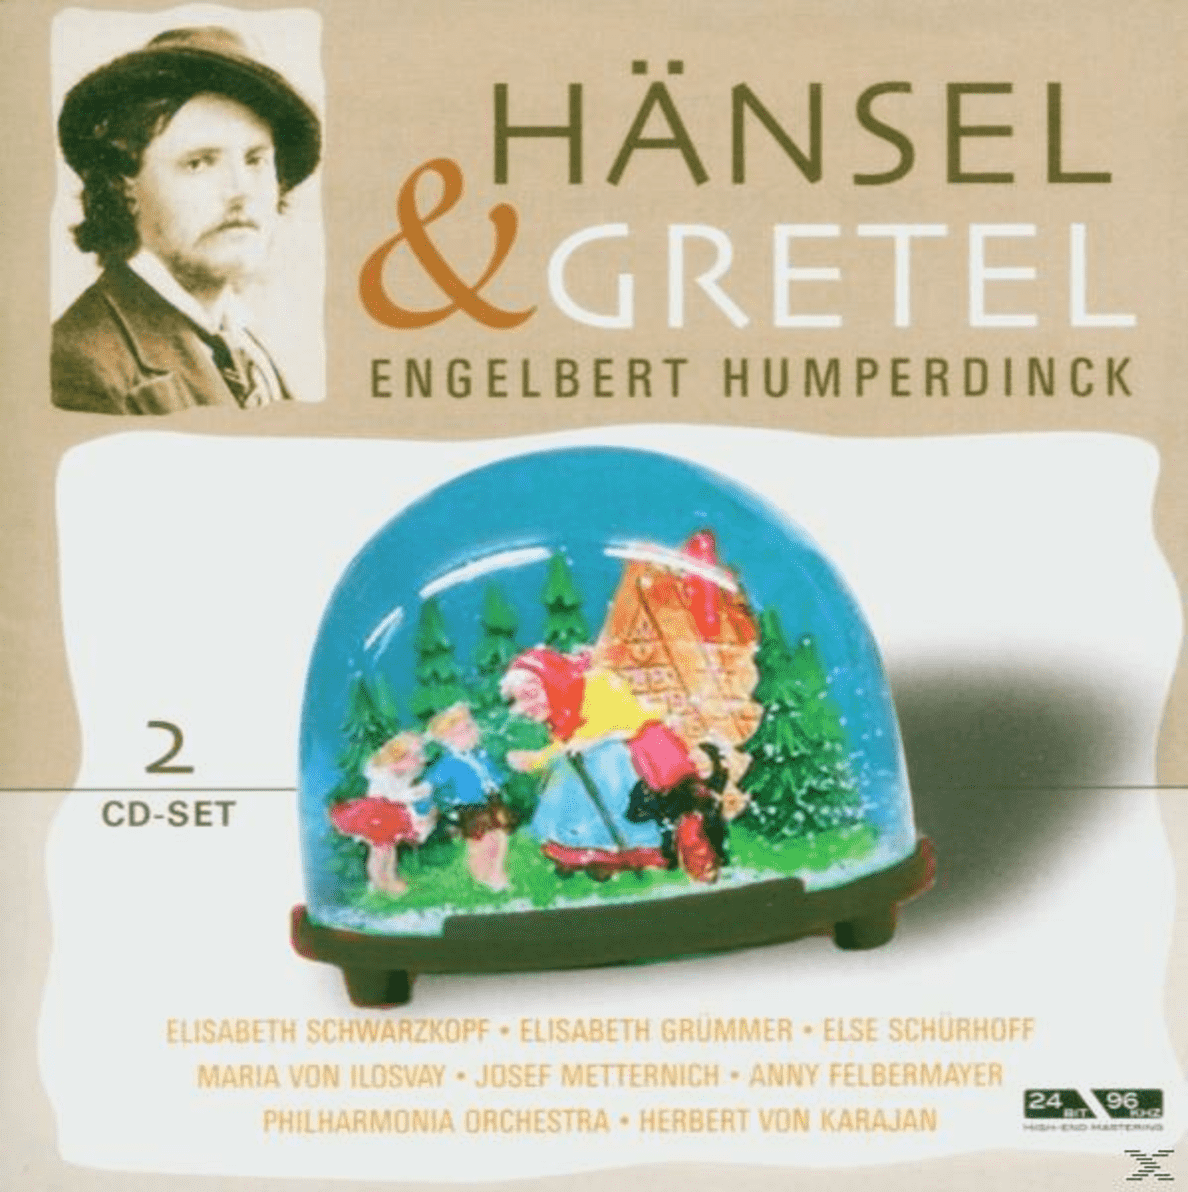 Hänsel & Gretel (Humperdinck, Engelbert) VARIOUS auf CD